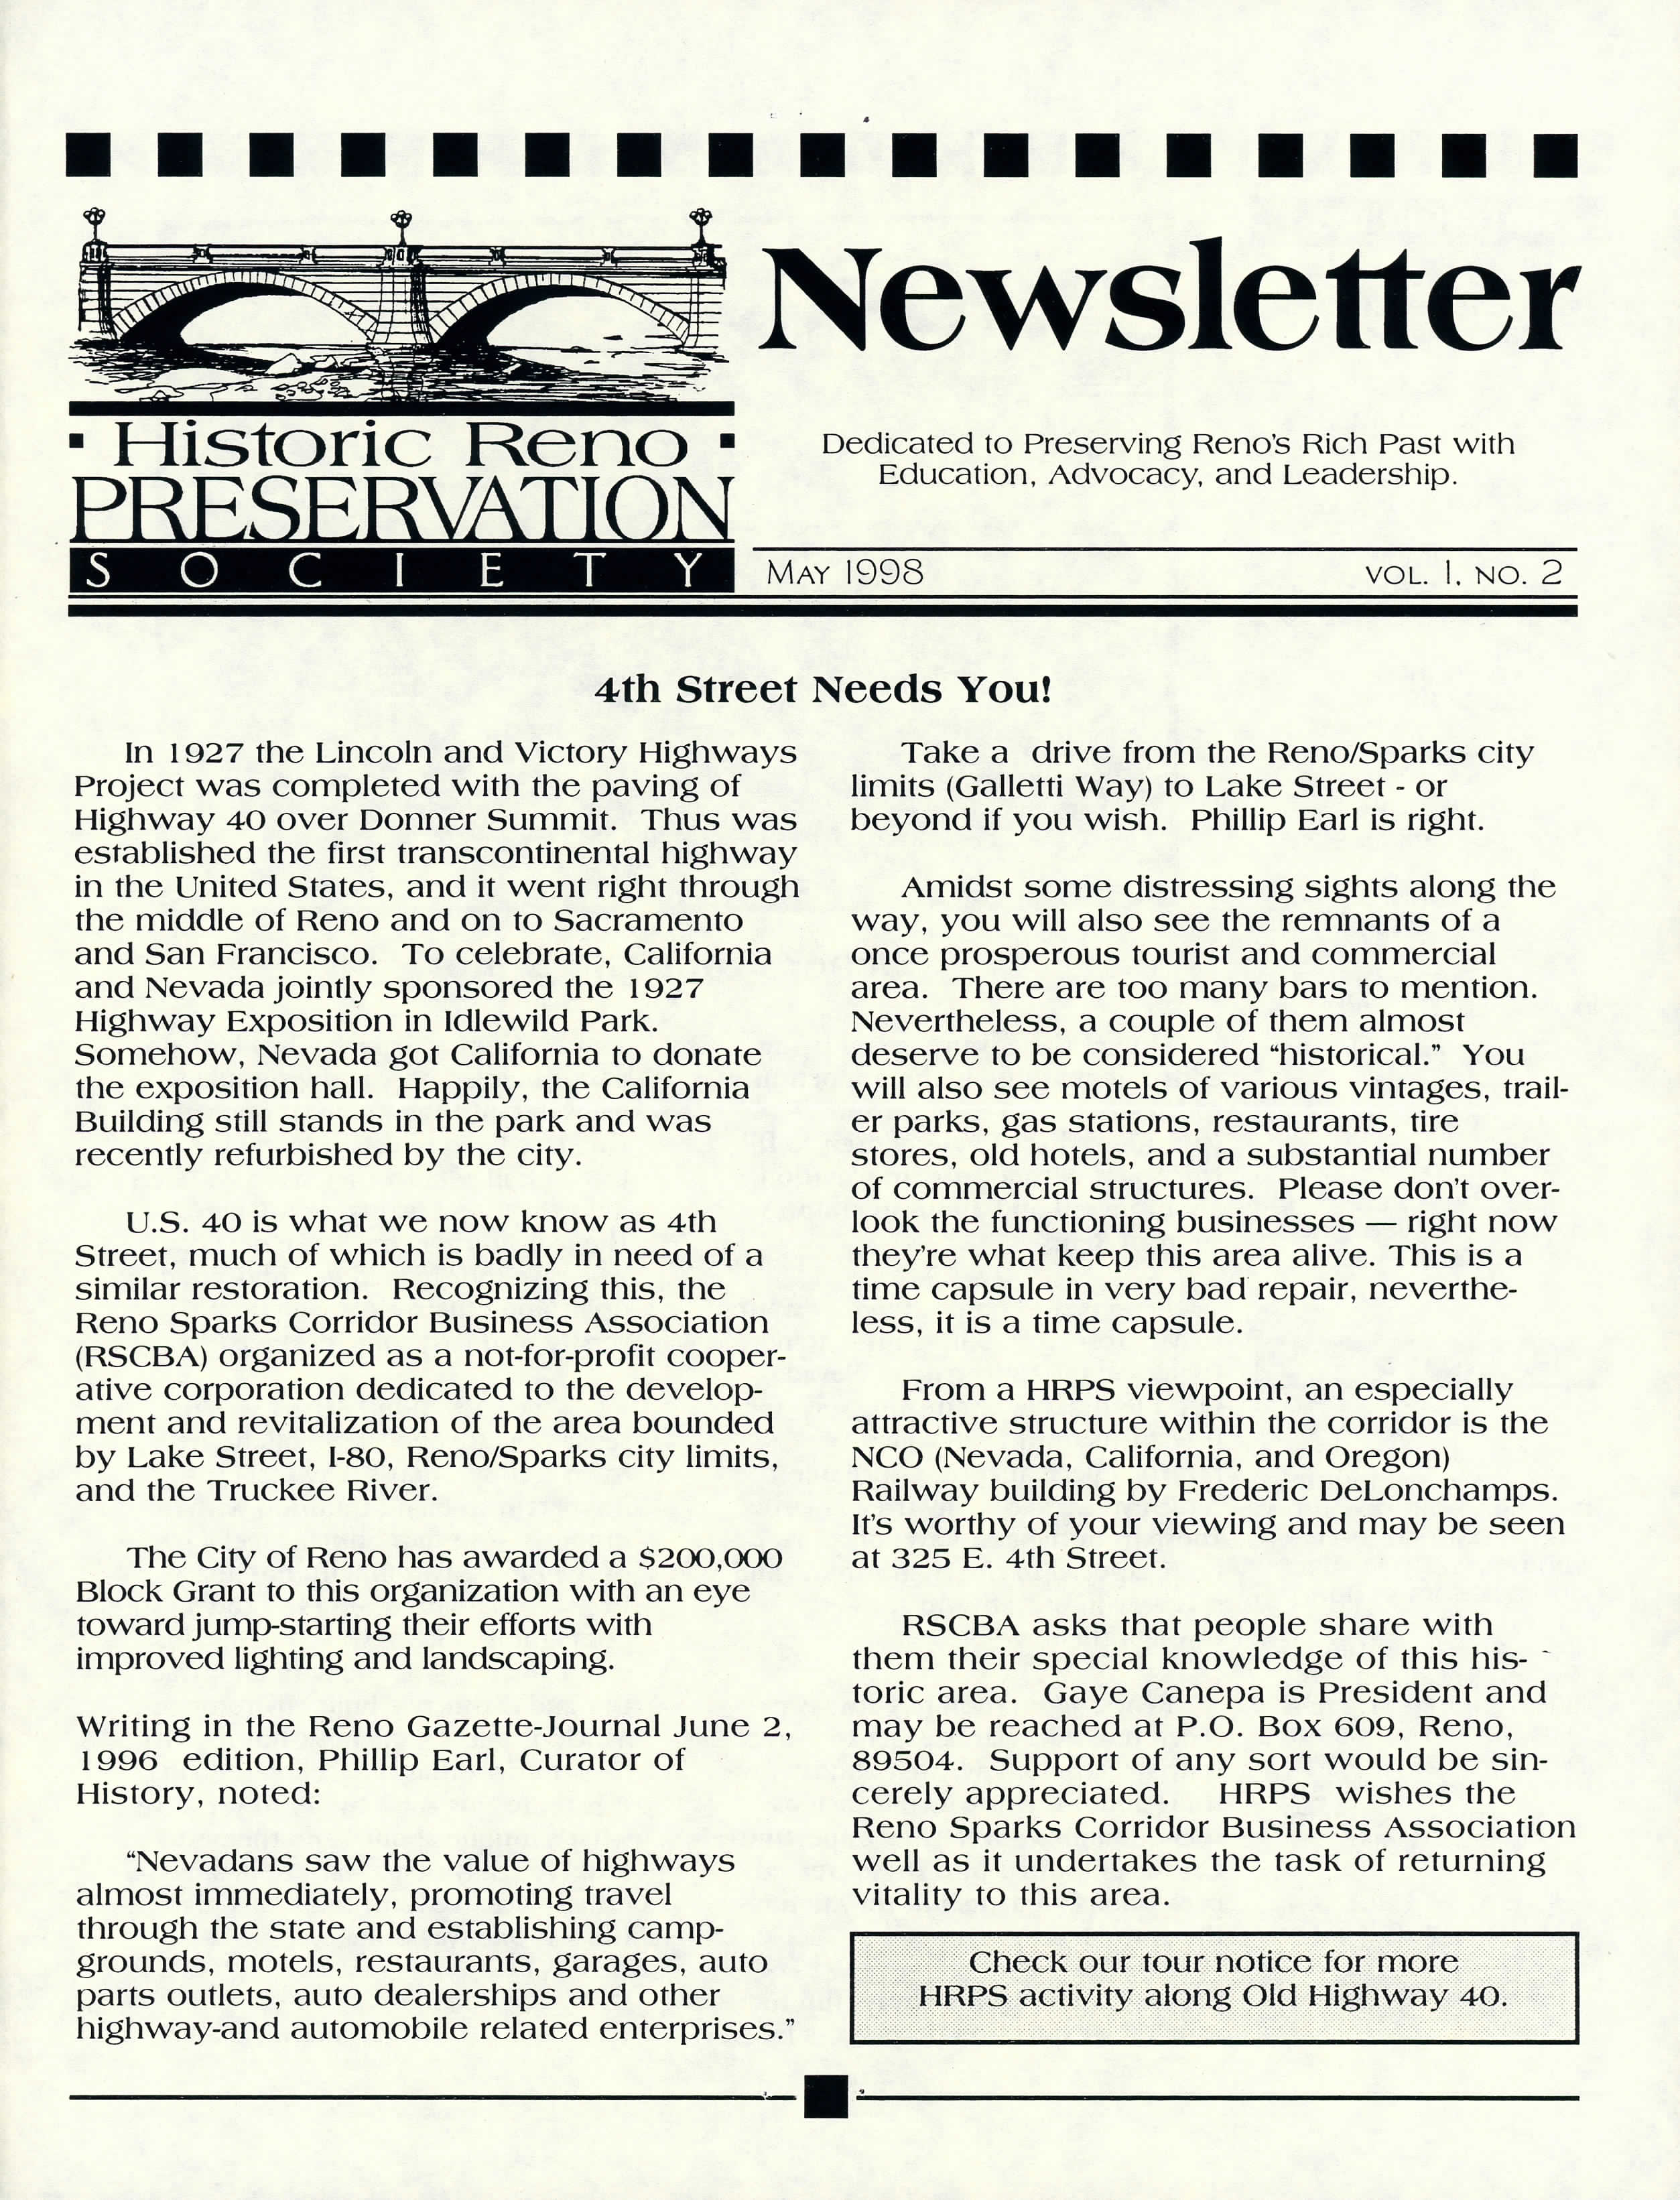 Newsletter Volume 1, Number 2, May 1998